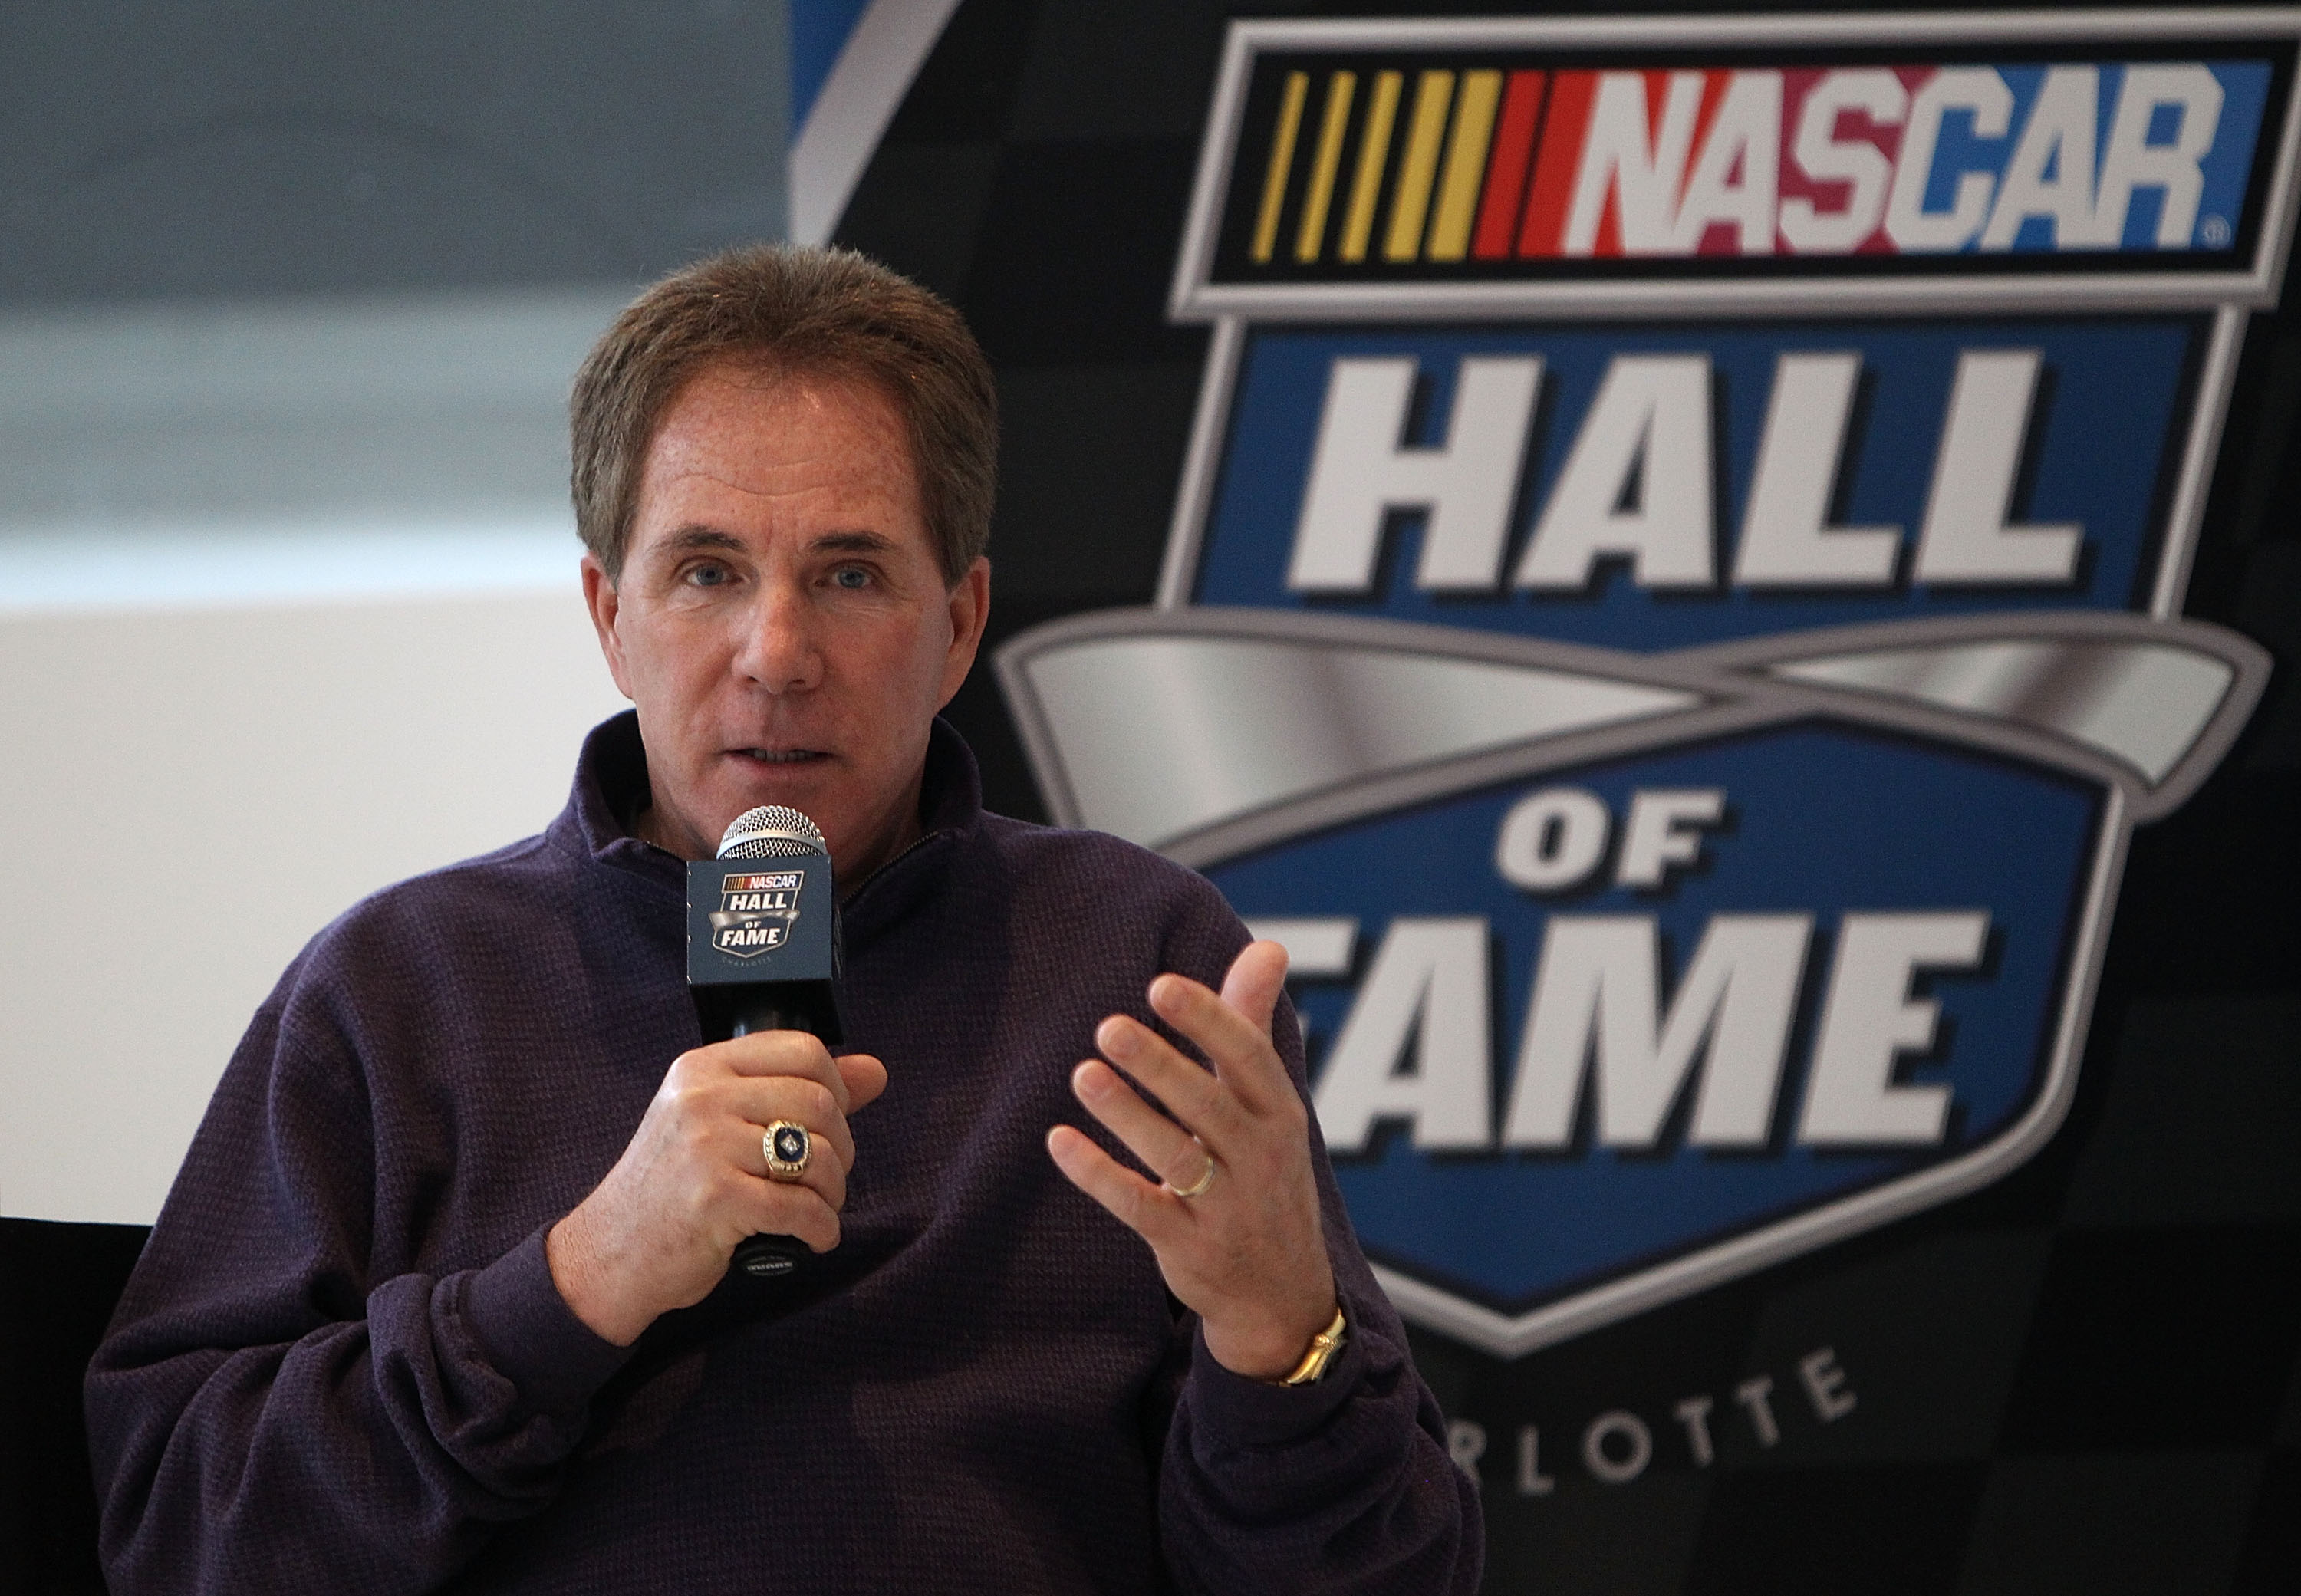 Darrell Waltrip earned a  million dollar salary, leaving the net worth at 25 million in 2017